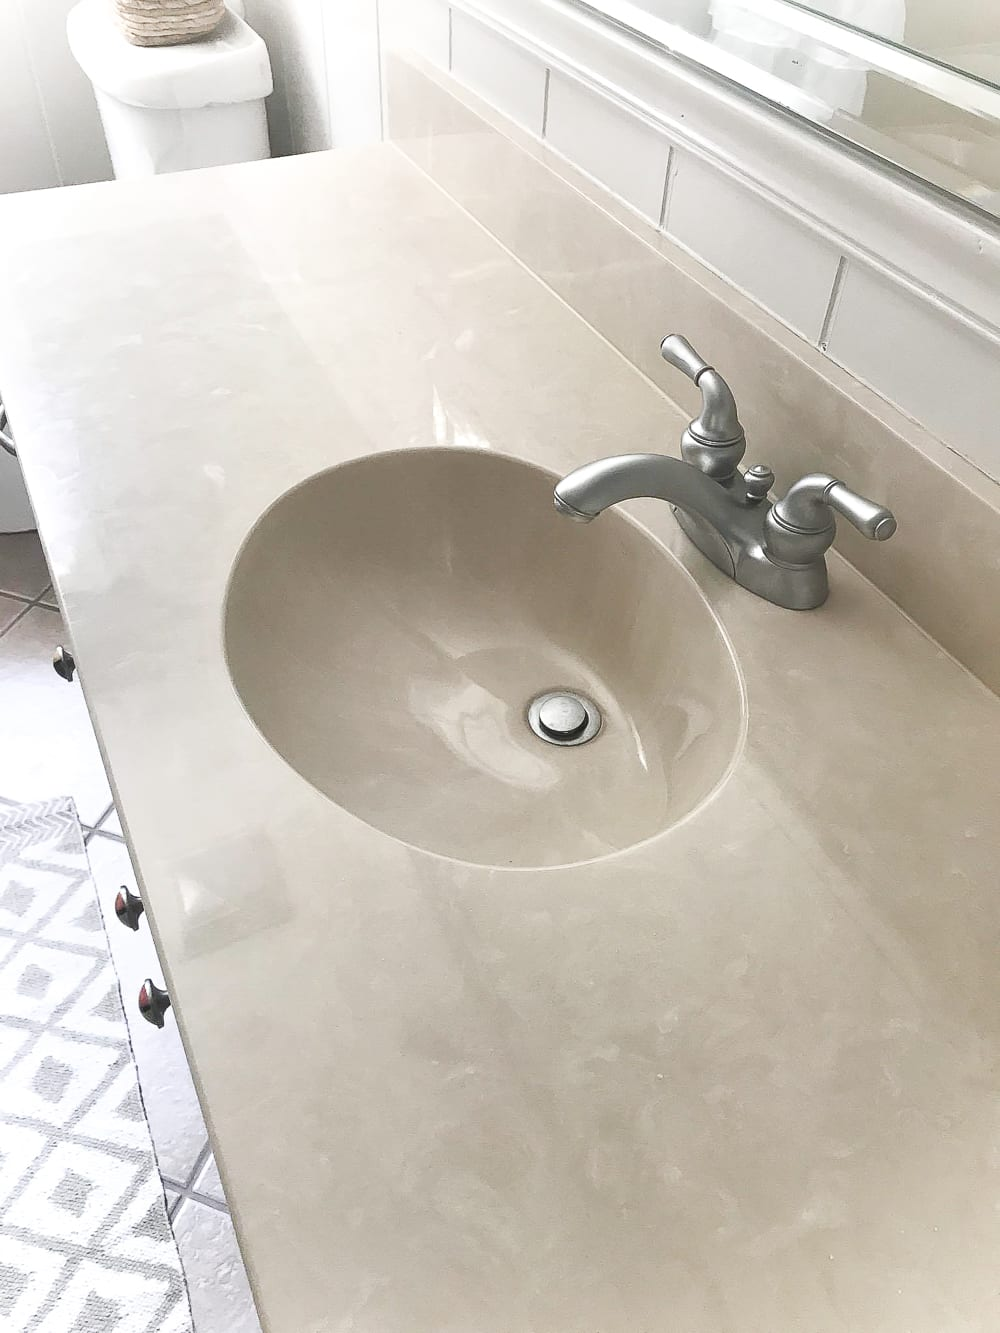 Diy Painted Bathroom Sink Countertop Blesserhouse An 80s Beige Cultured Marble